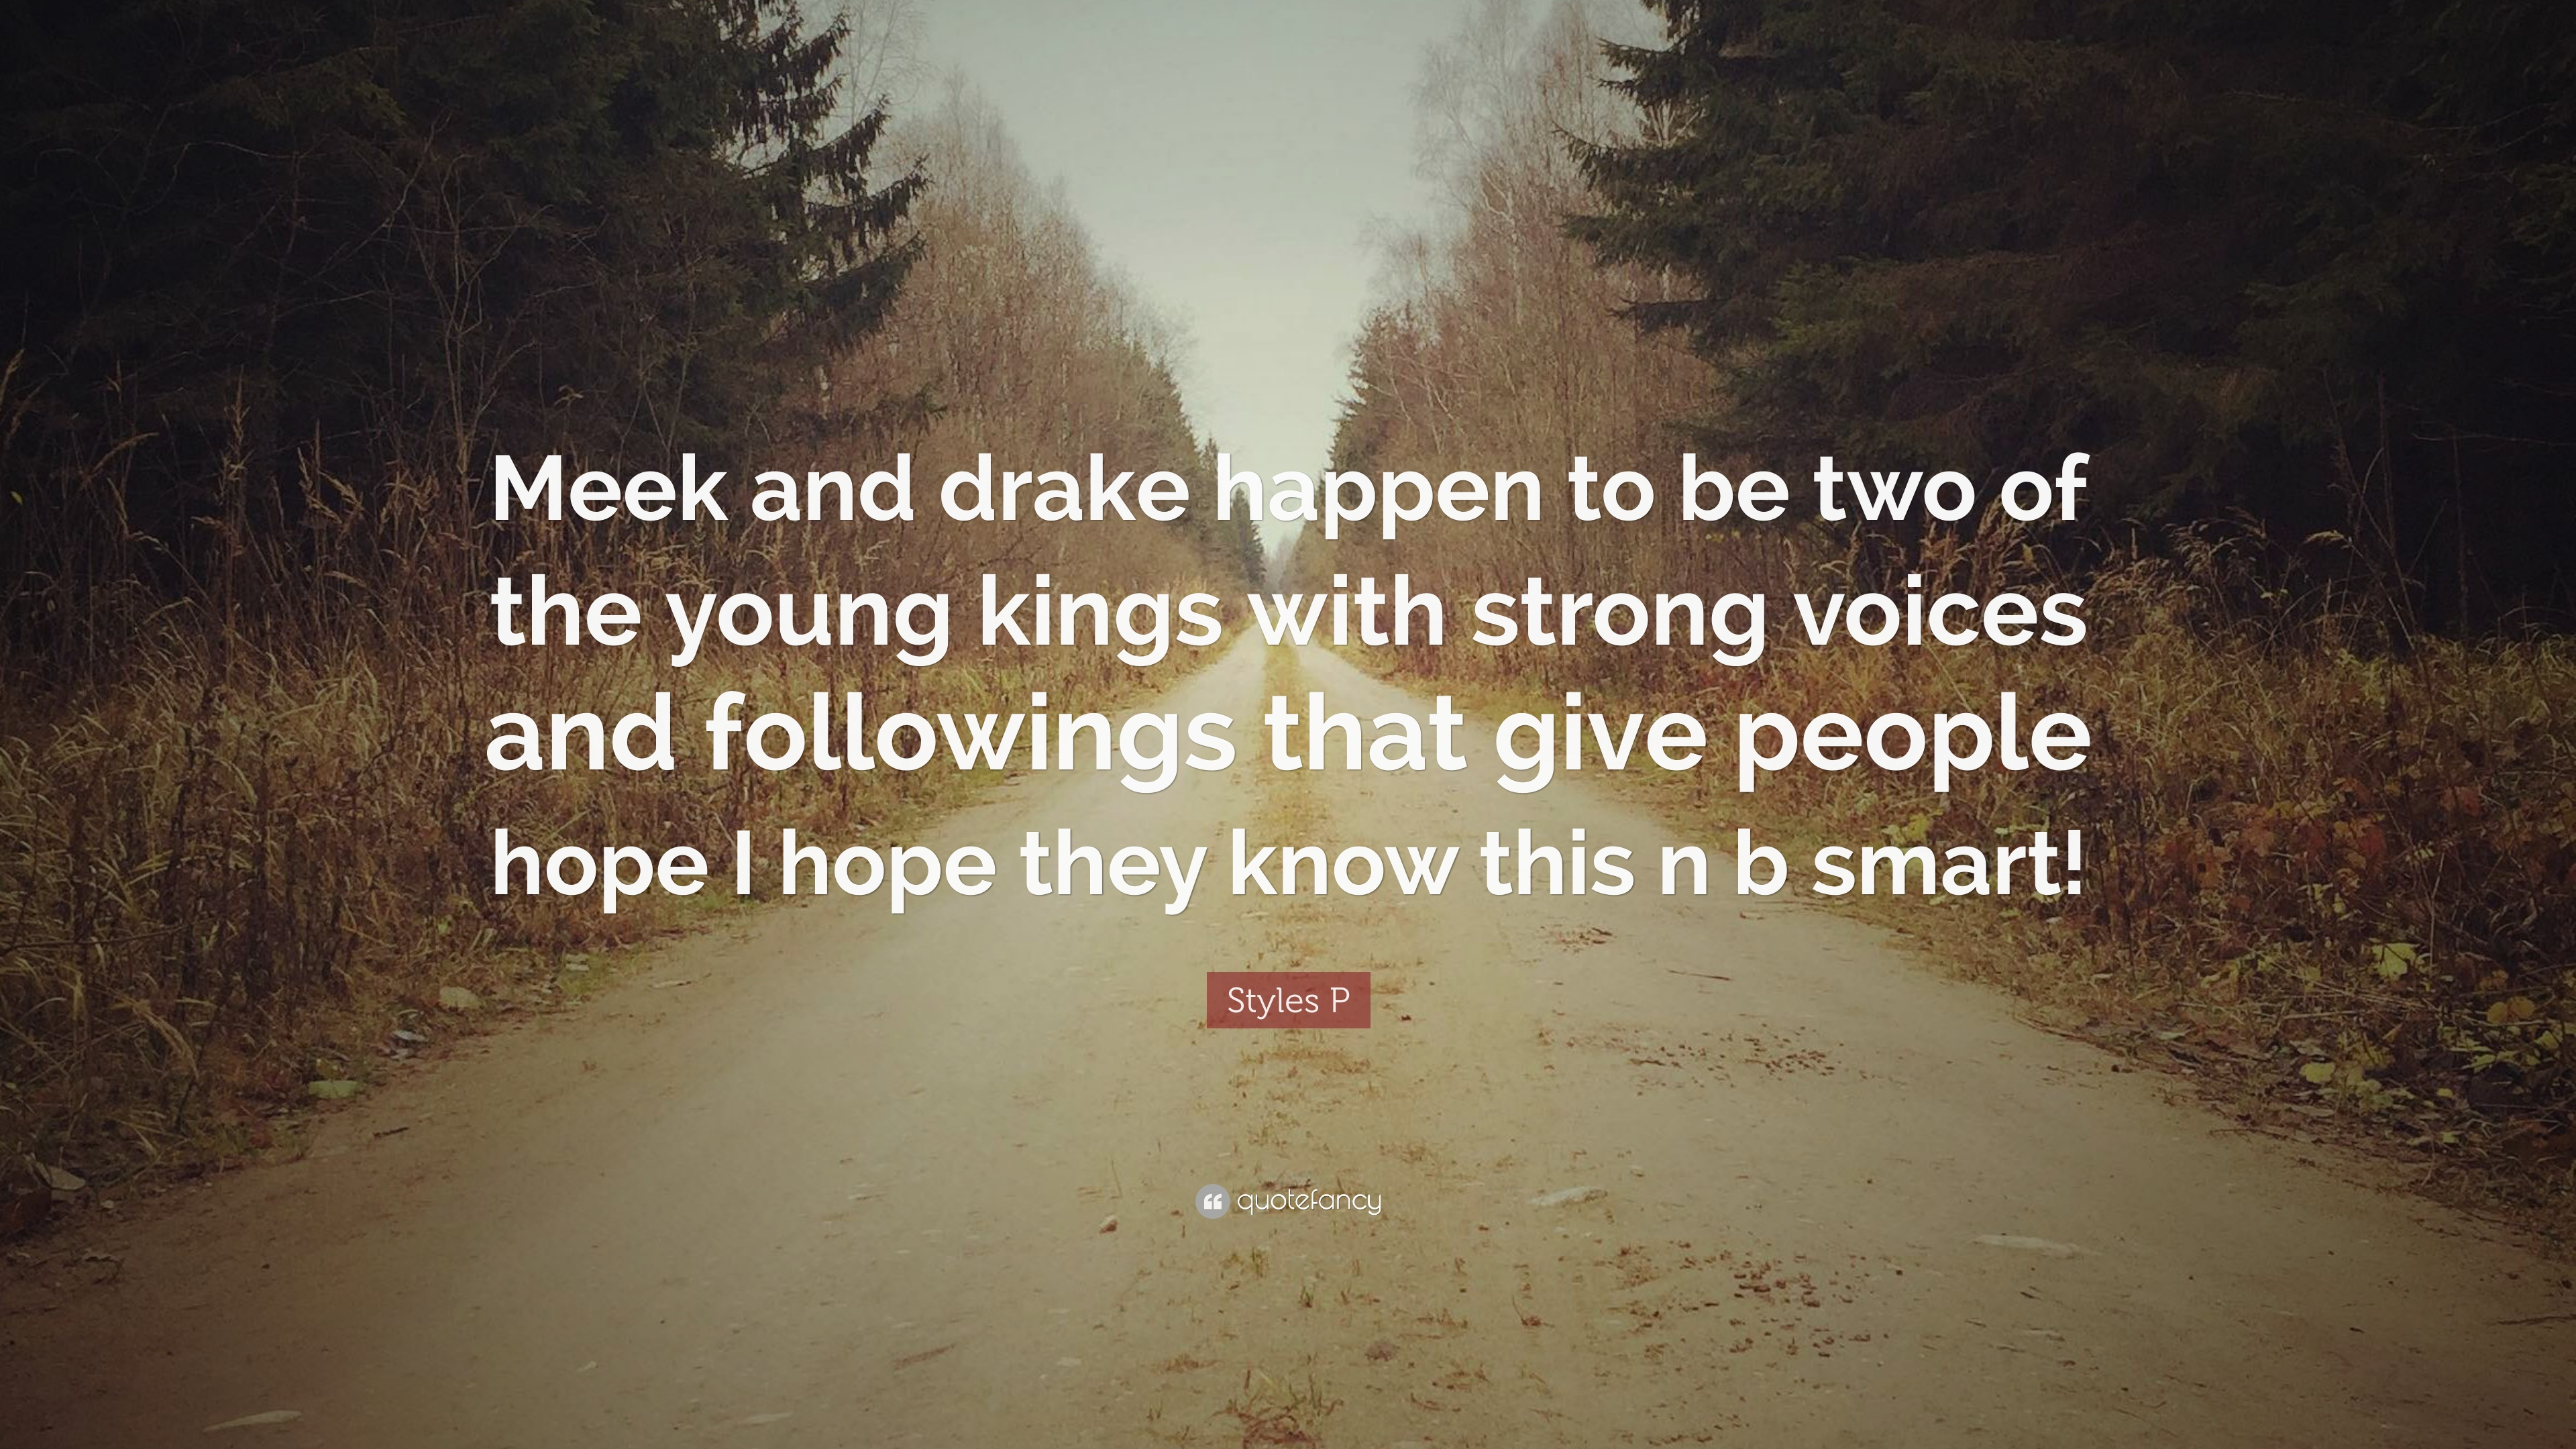 Styles P Quote \u201cMeek and drake happen to be two of the